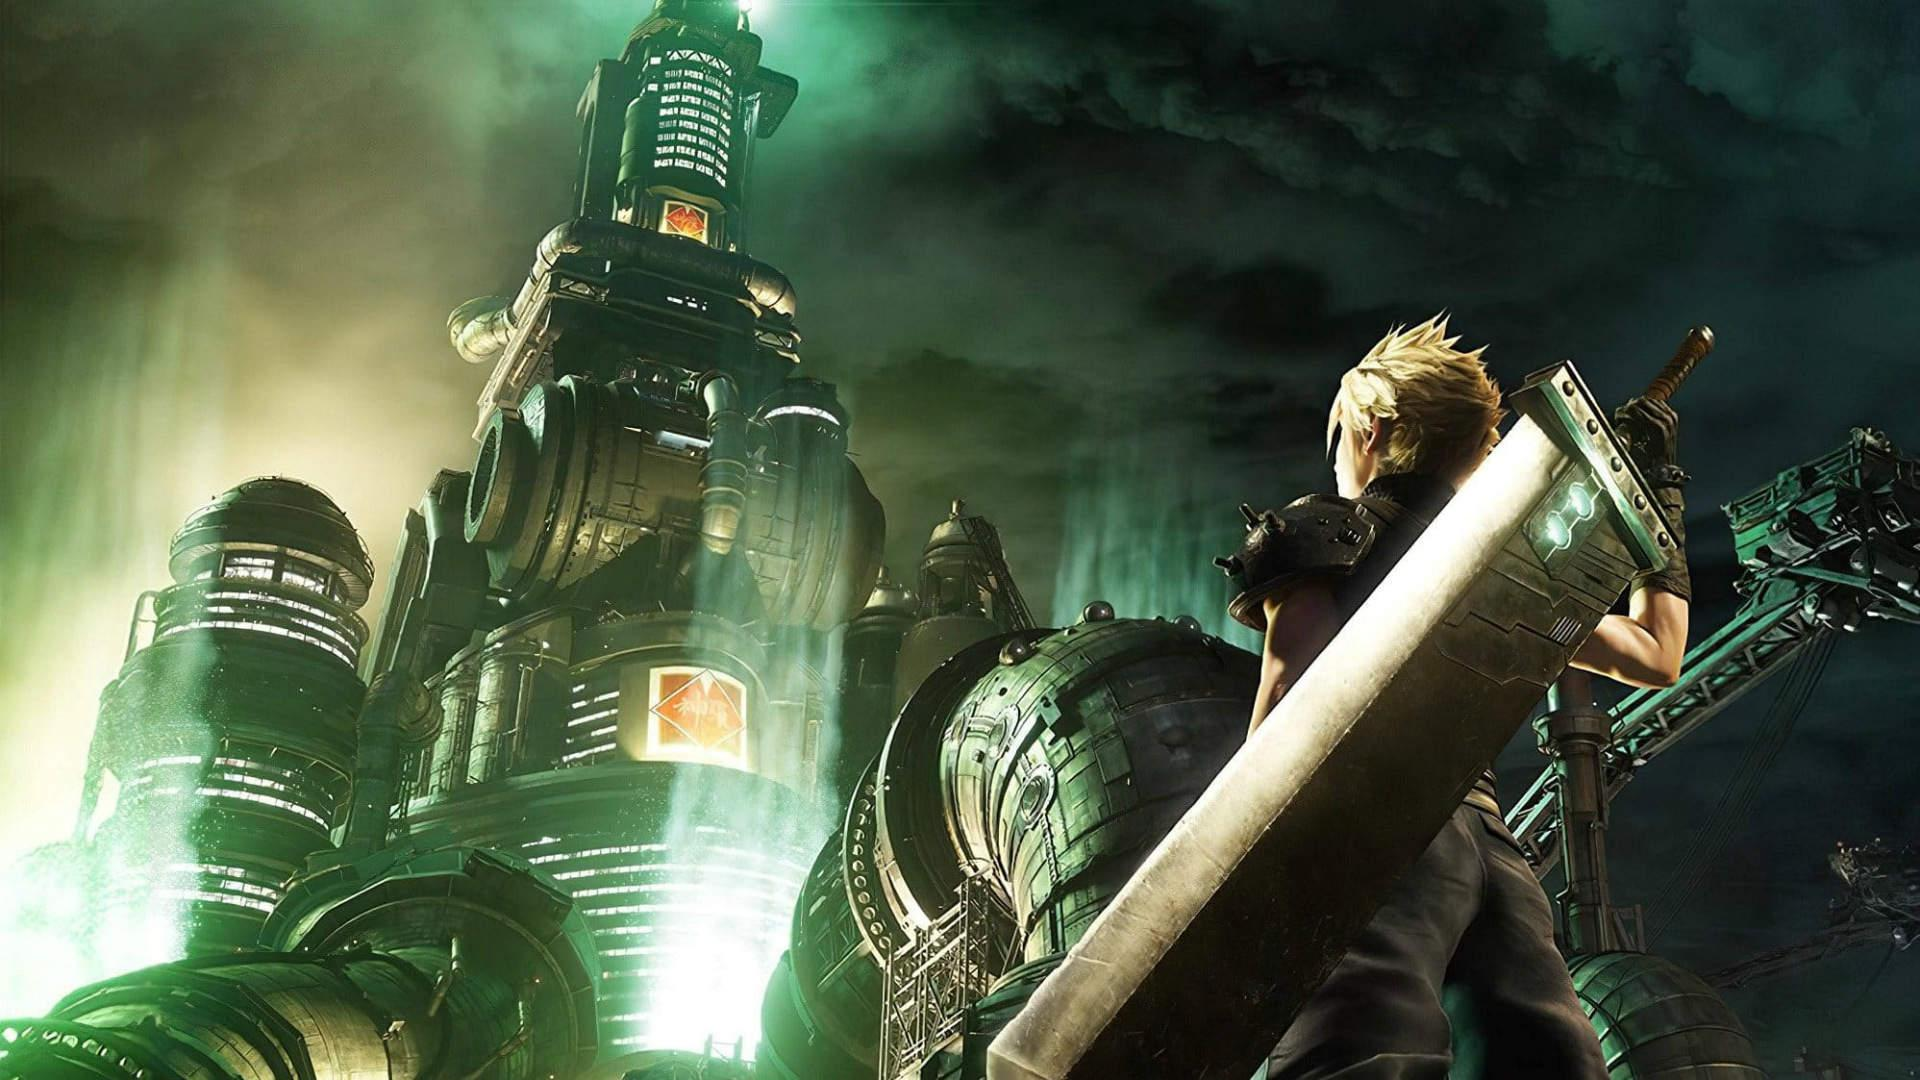 Final fantasy cloud shinra